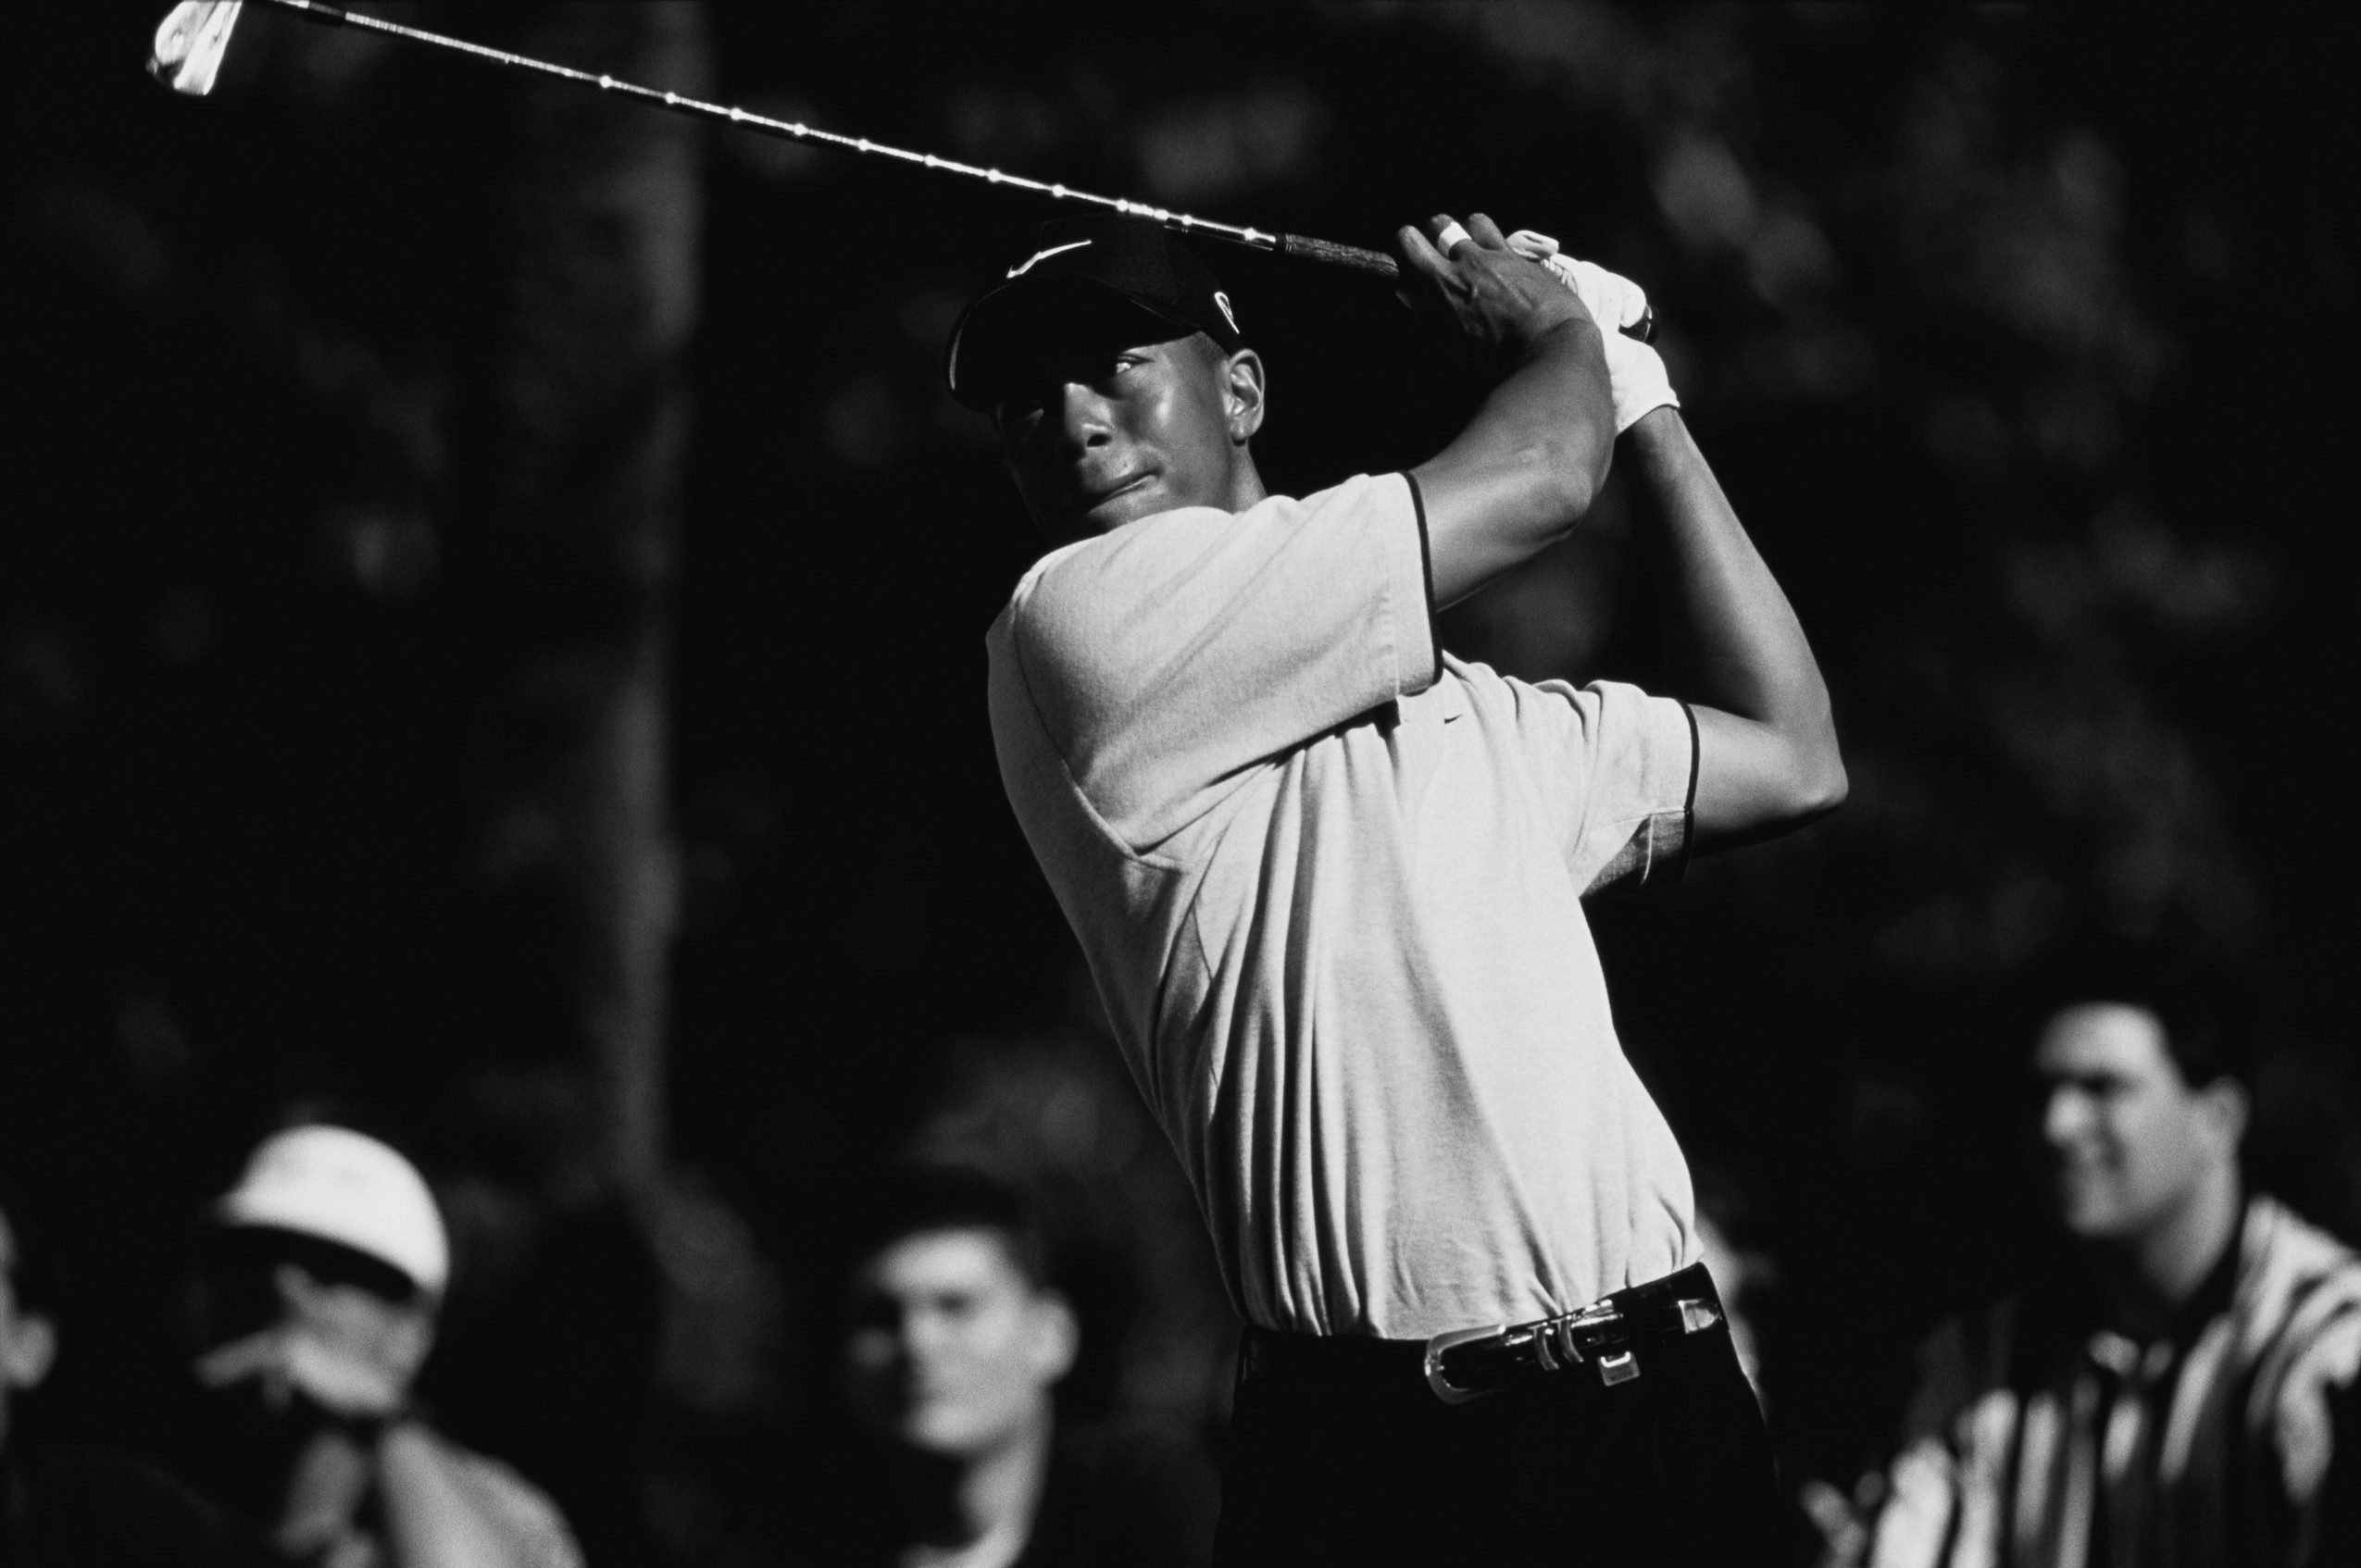 1998, Miami, Florida, USA --- Professional golfer Tiger Woods swings his golf club during the 1998 Doral Open. --- Image by © Duomo/CORBIS